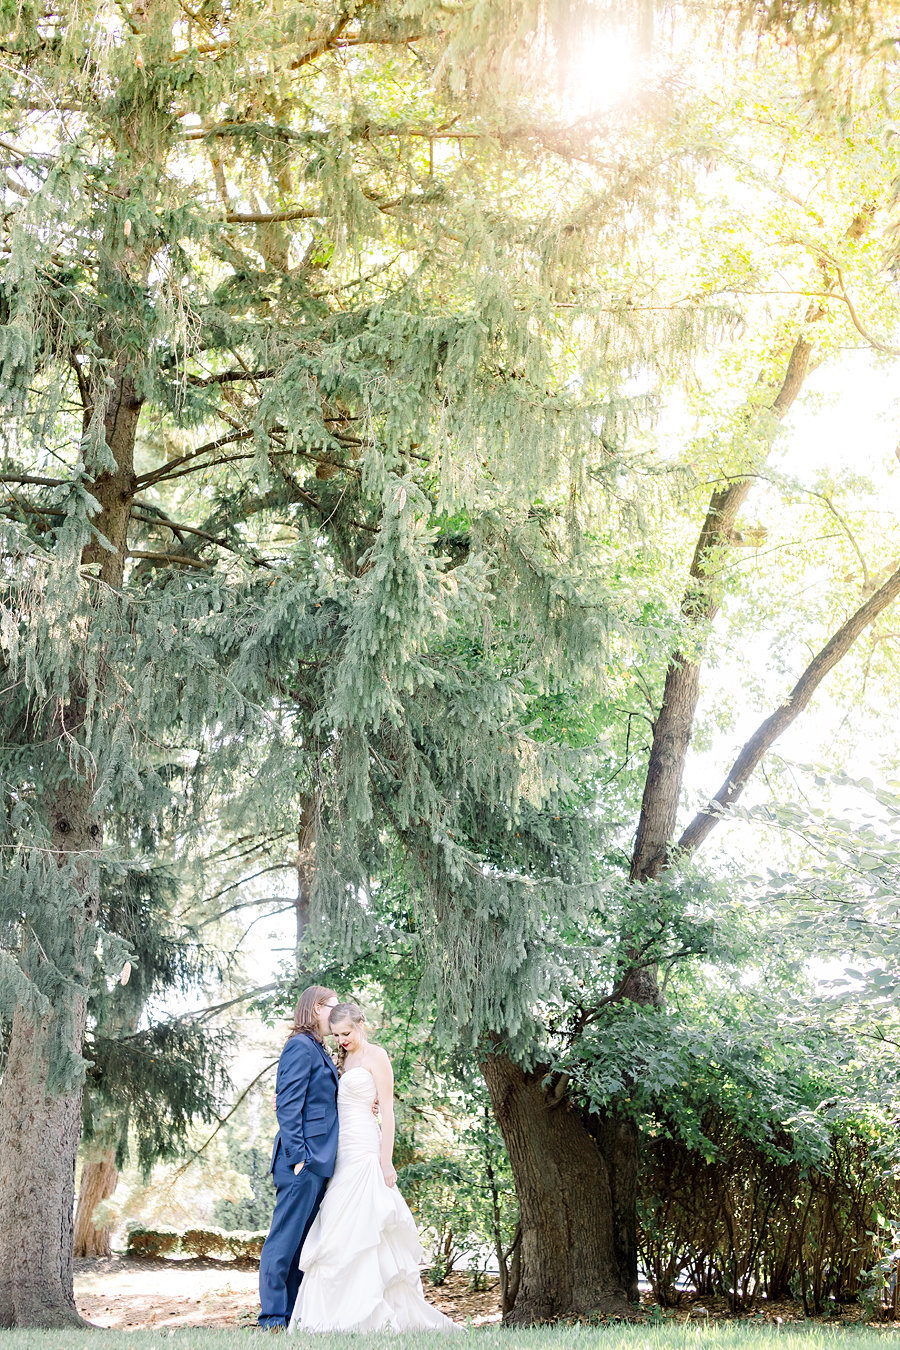 Husband and wife under evergreen trees